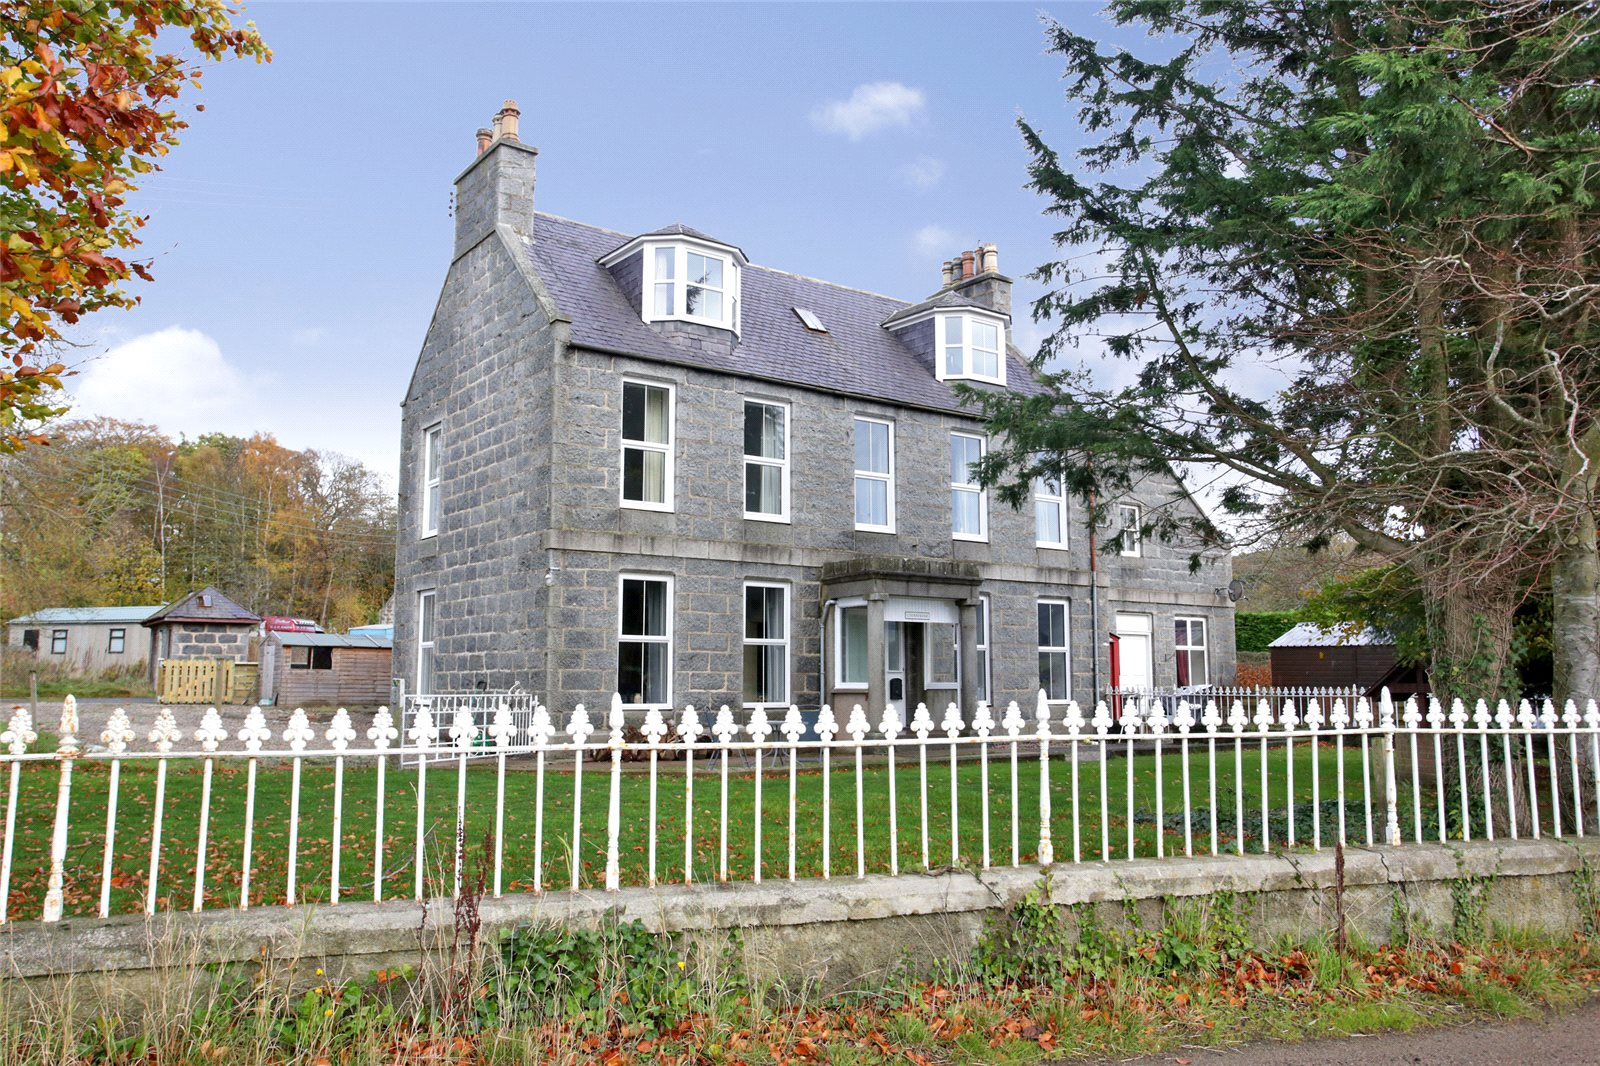 6 Bedrooms Semi Detached House for sale in Cherrybank, Whitehouse, Alford, Aberdeenshire, AB33